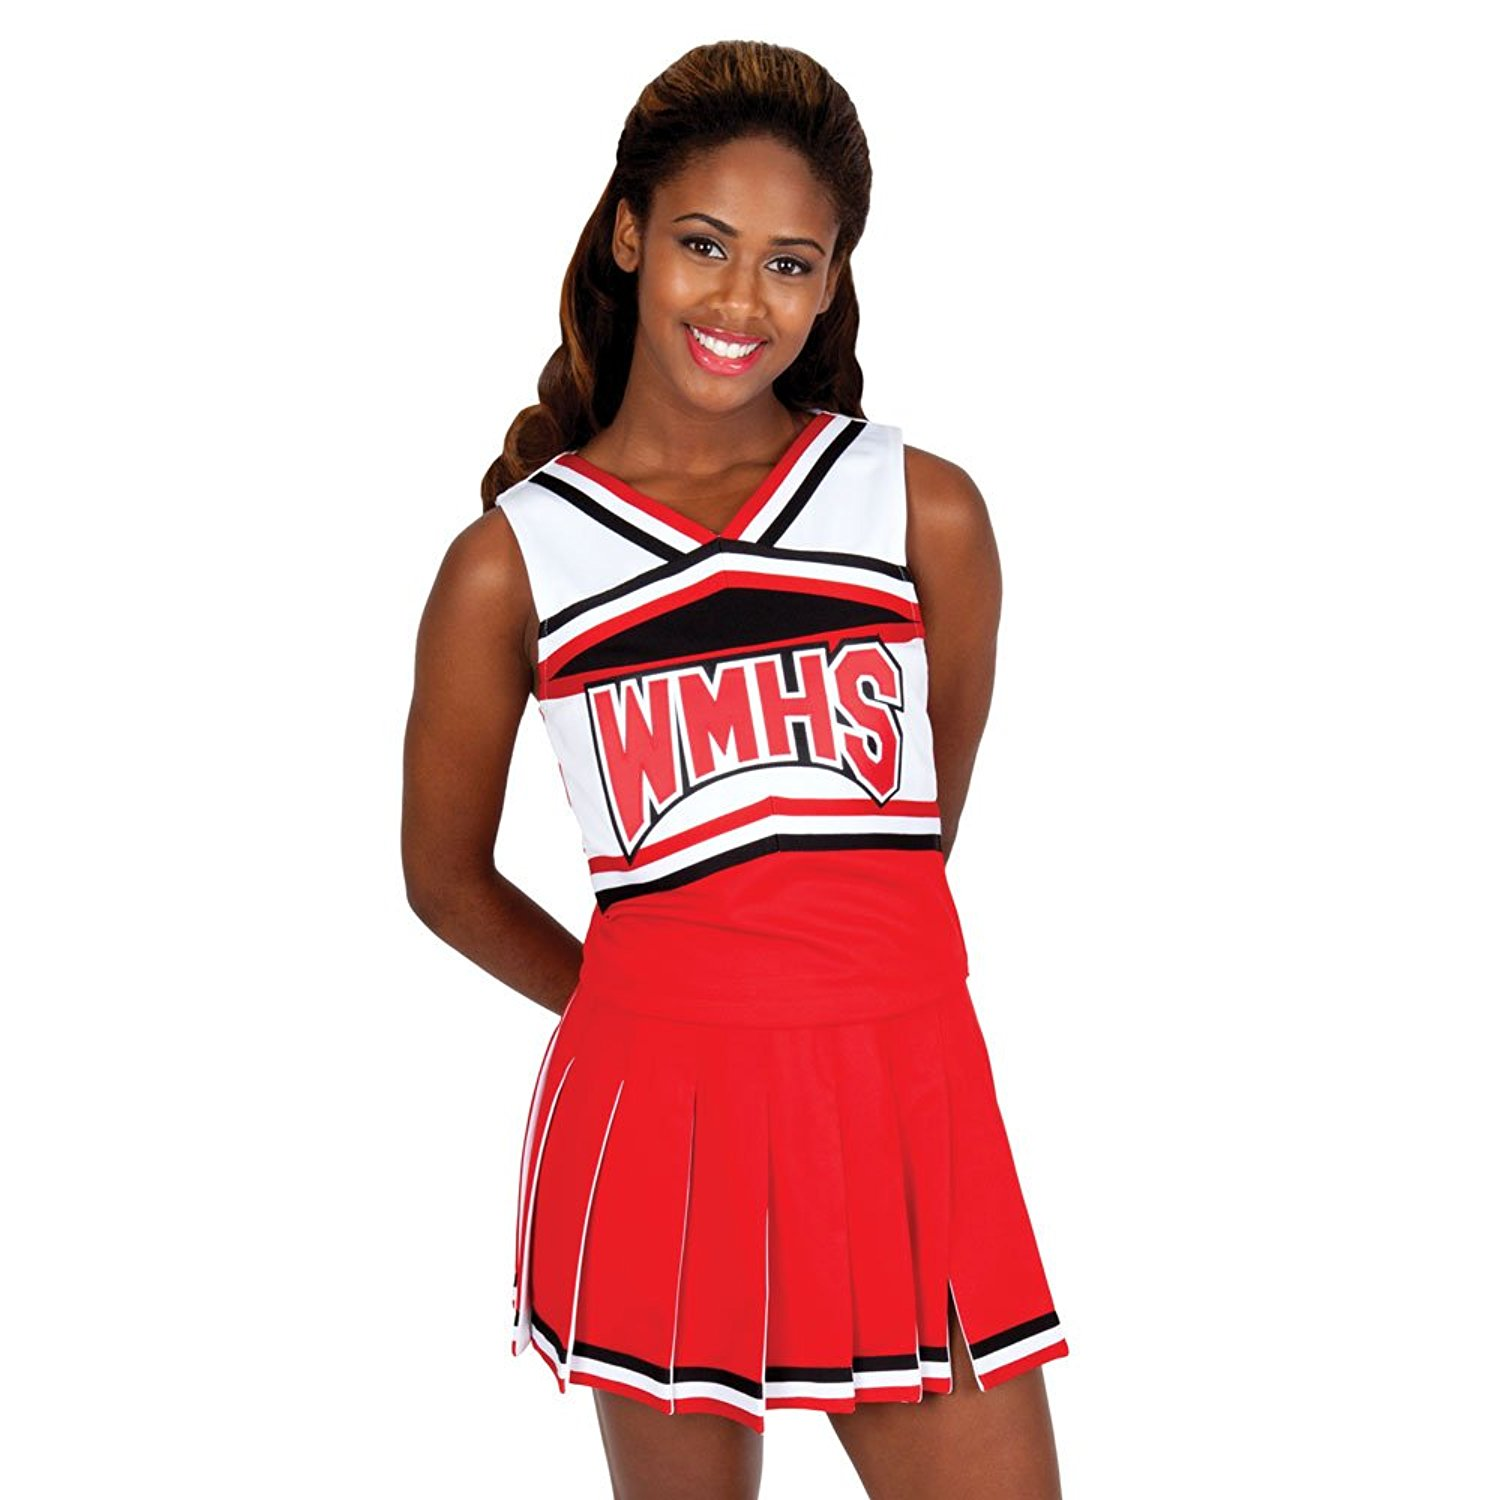 Cheerleader Images